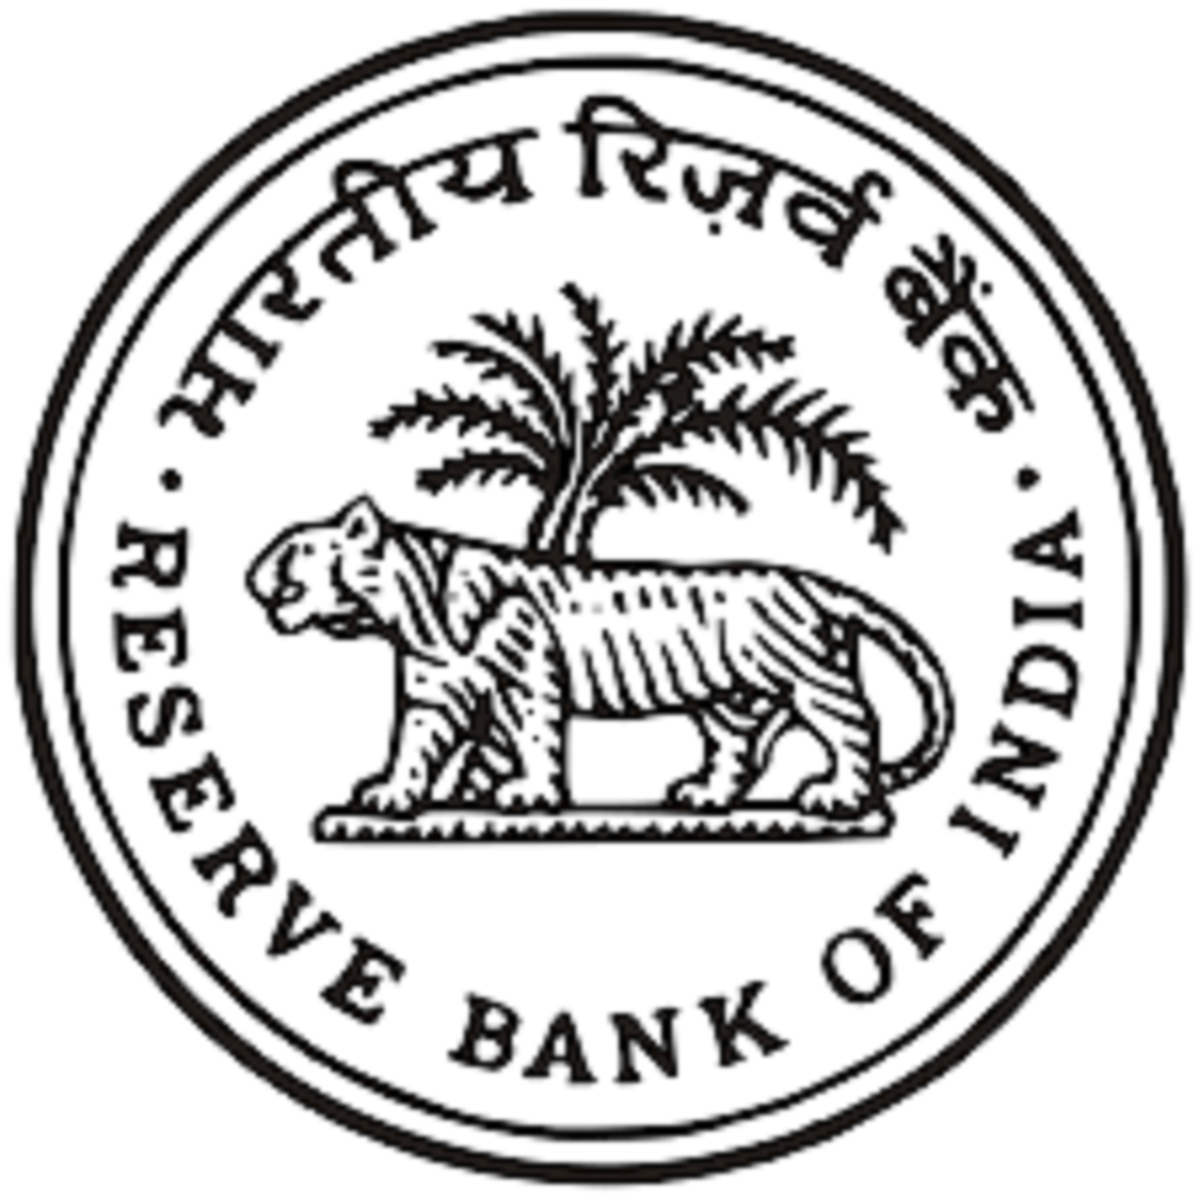 Functions of RBI (Reserve Bank of India)